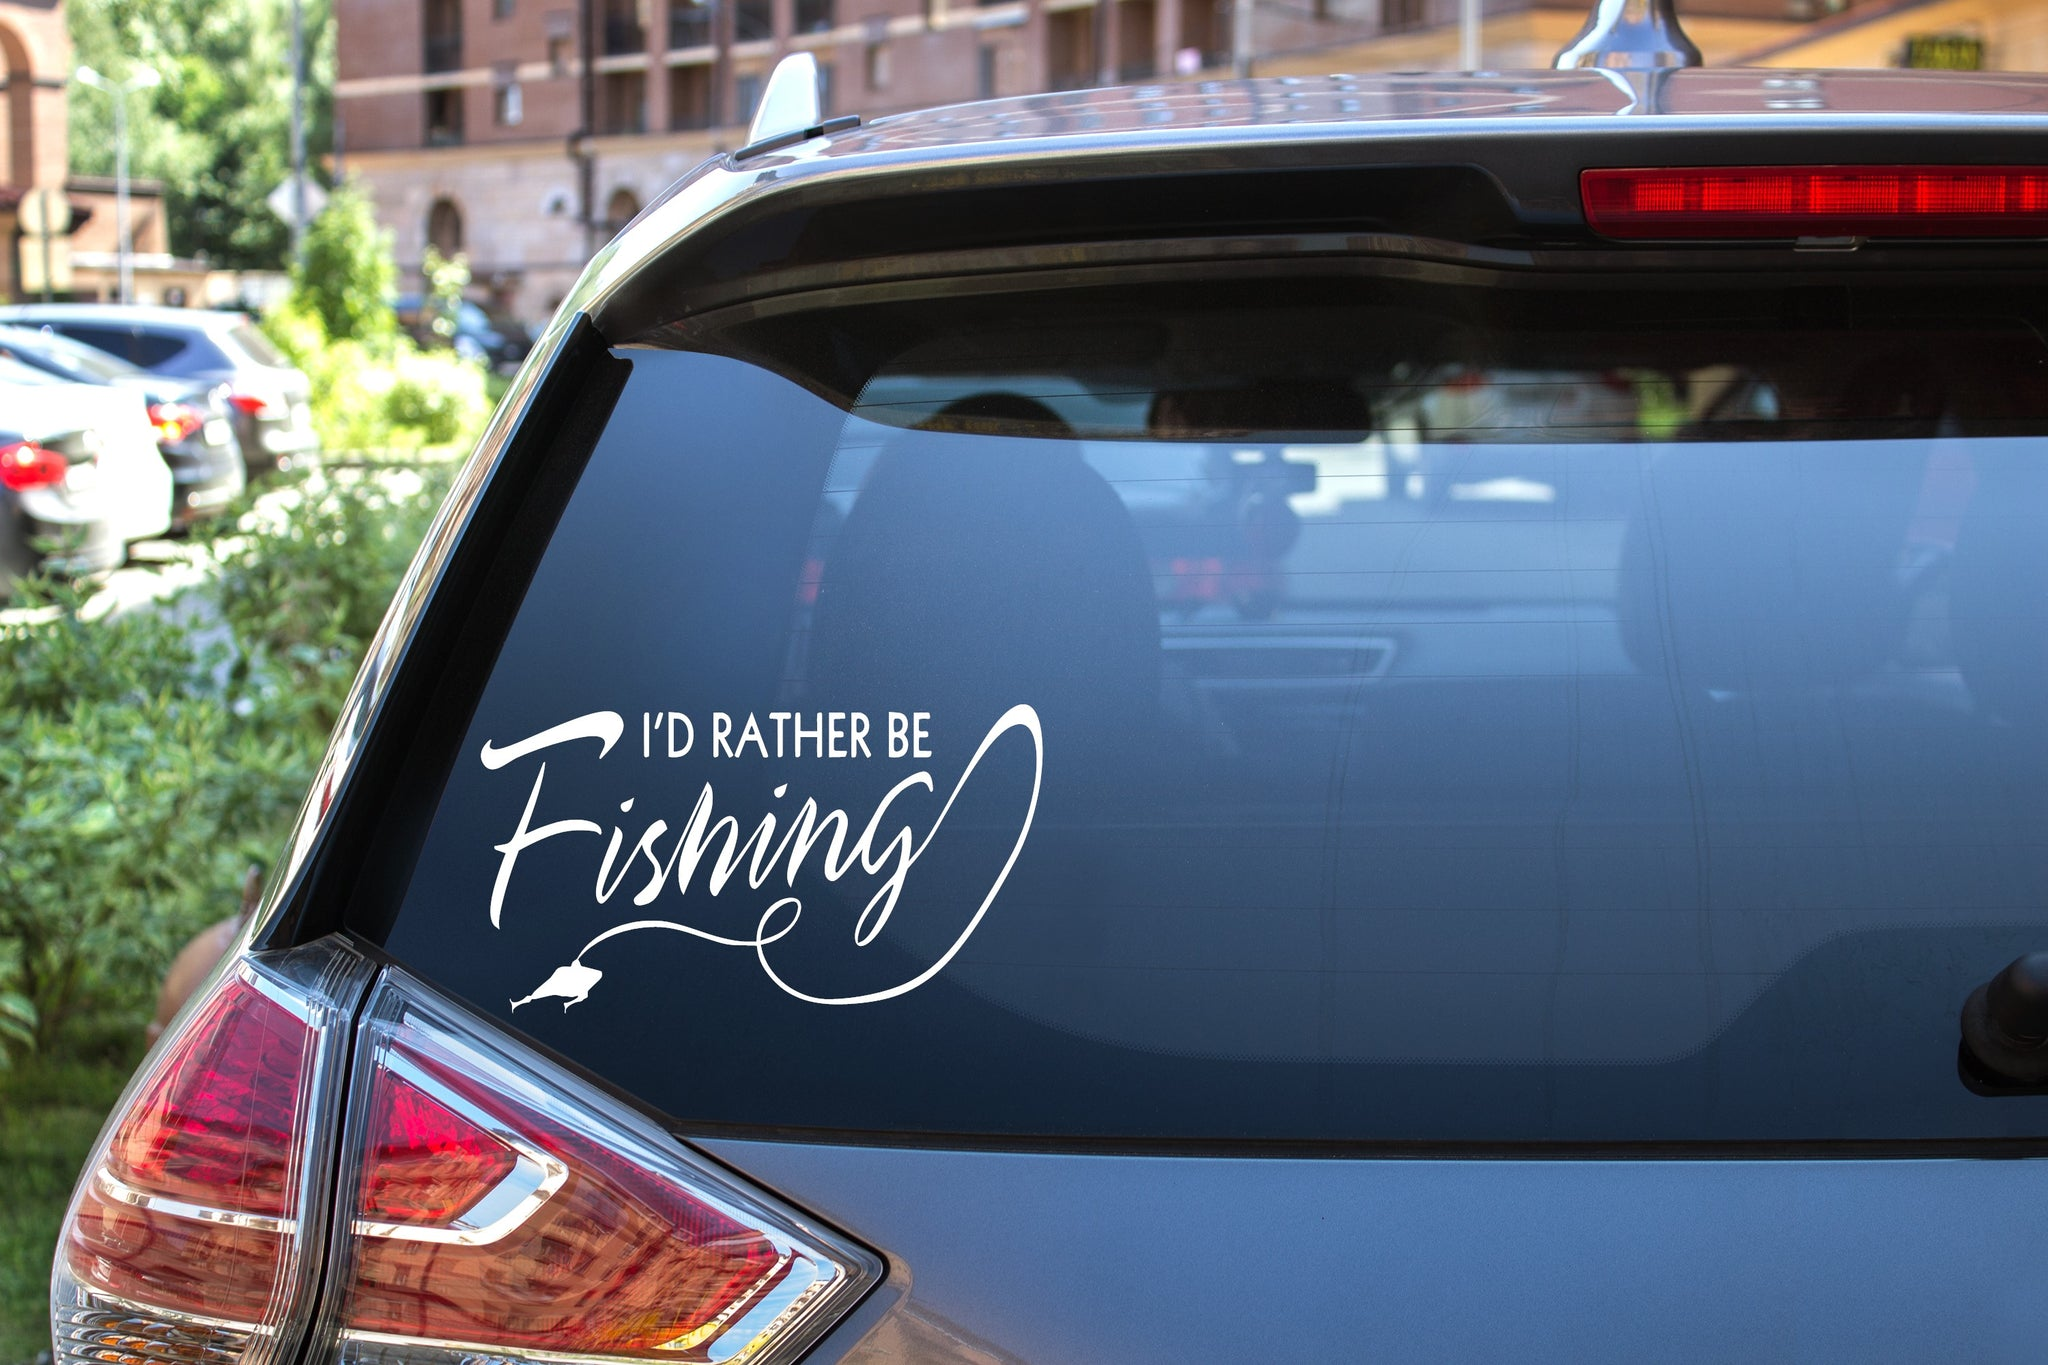 I'd Rather Be Fishing, 5 inch, outdoor, vinyl decal